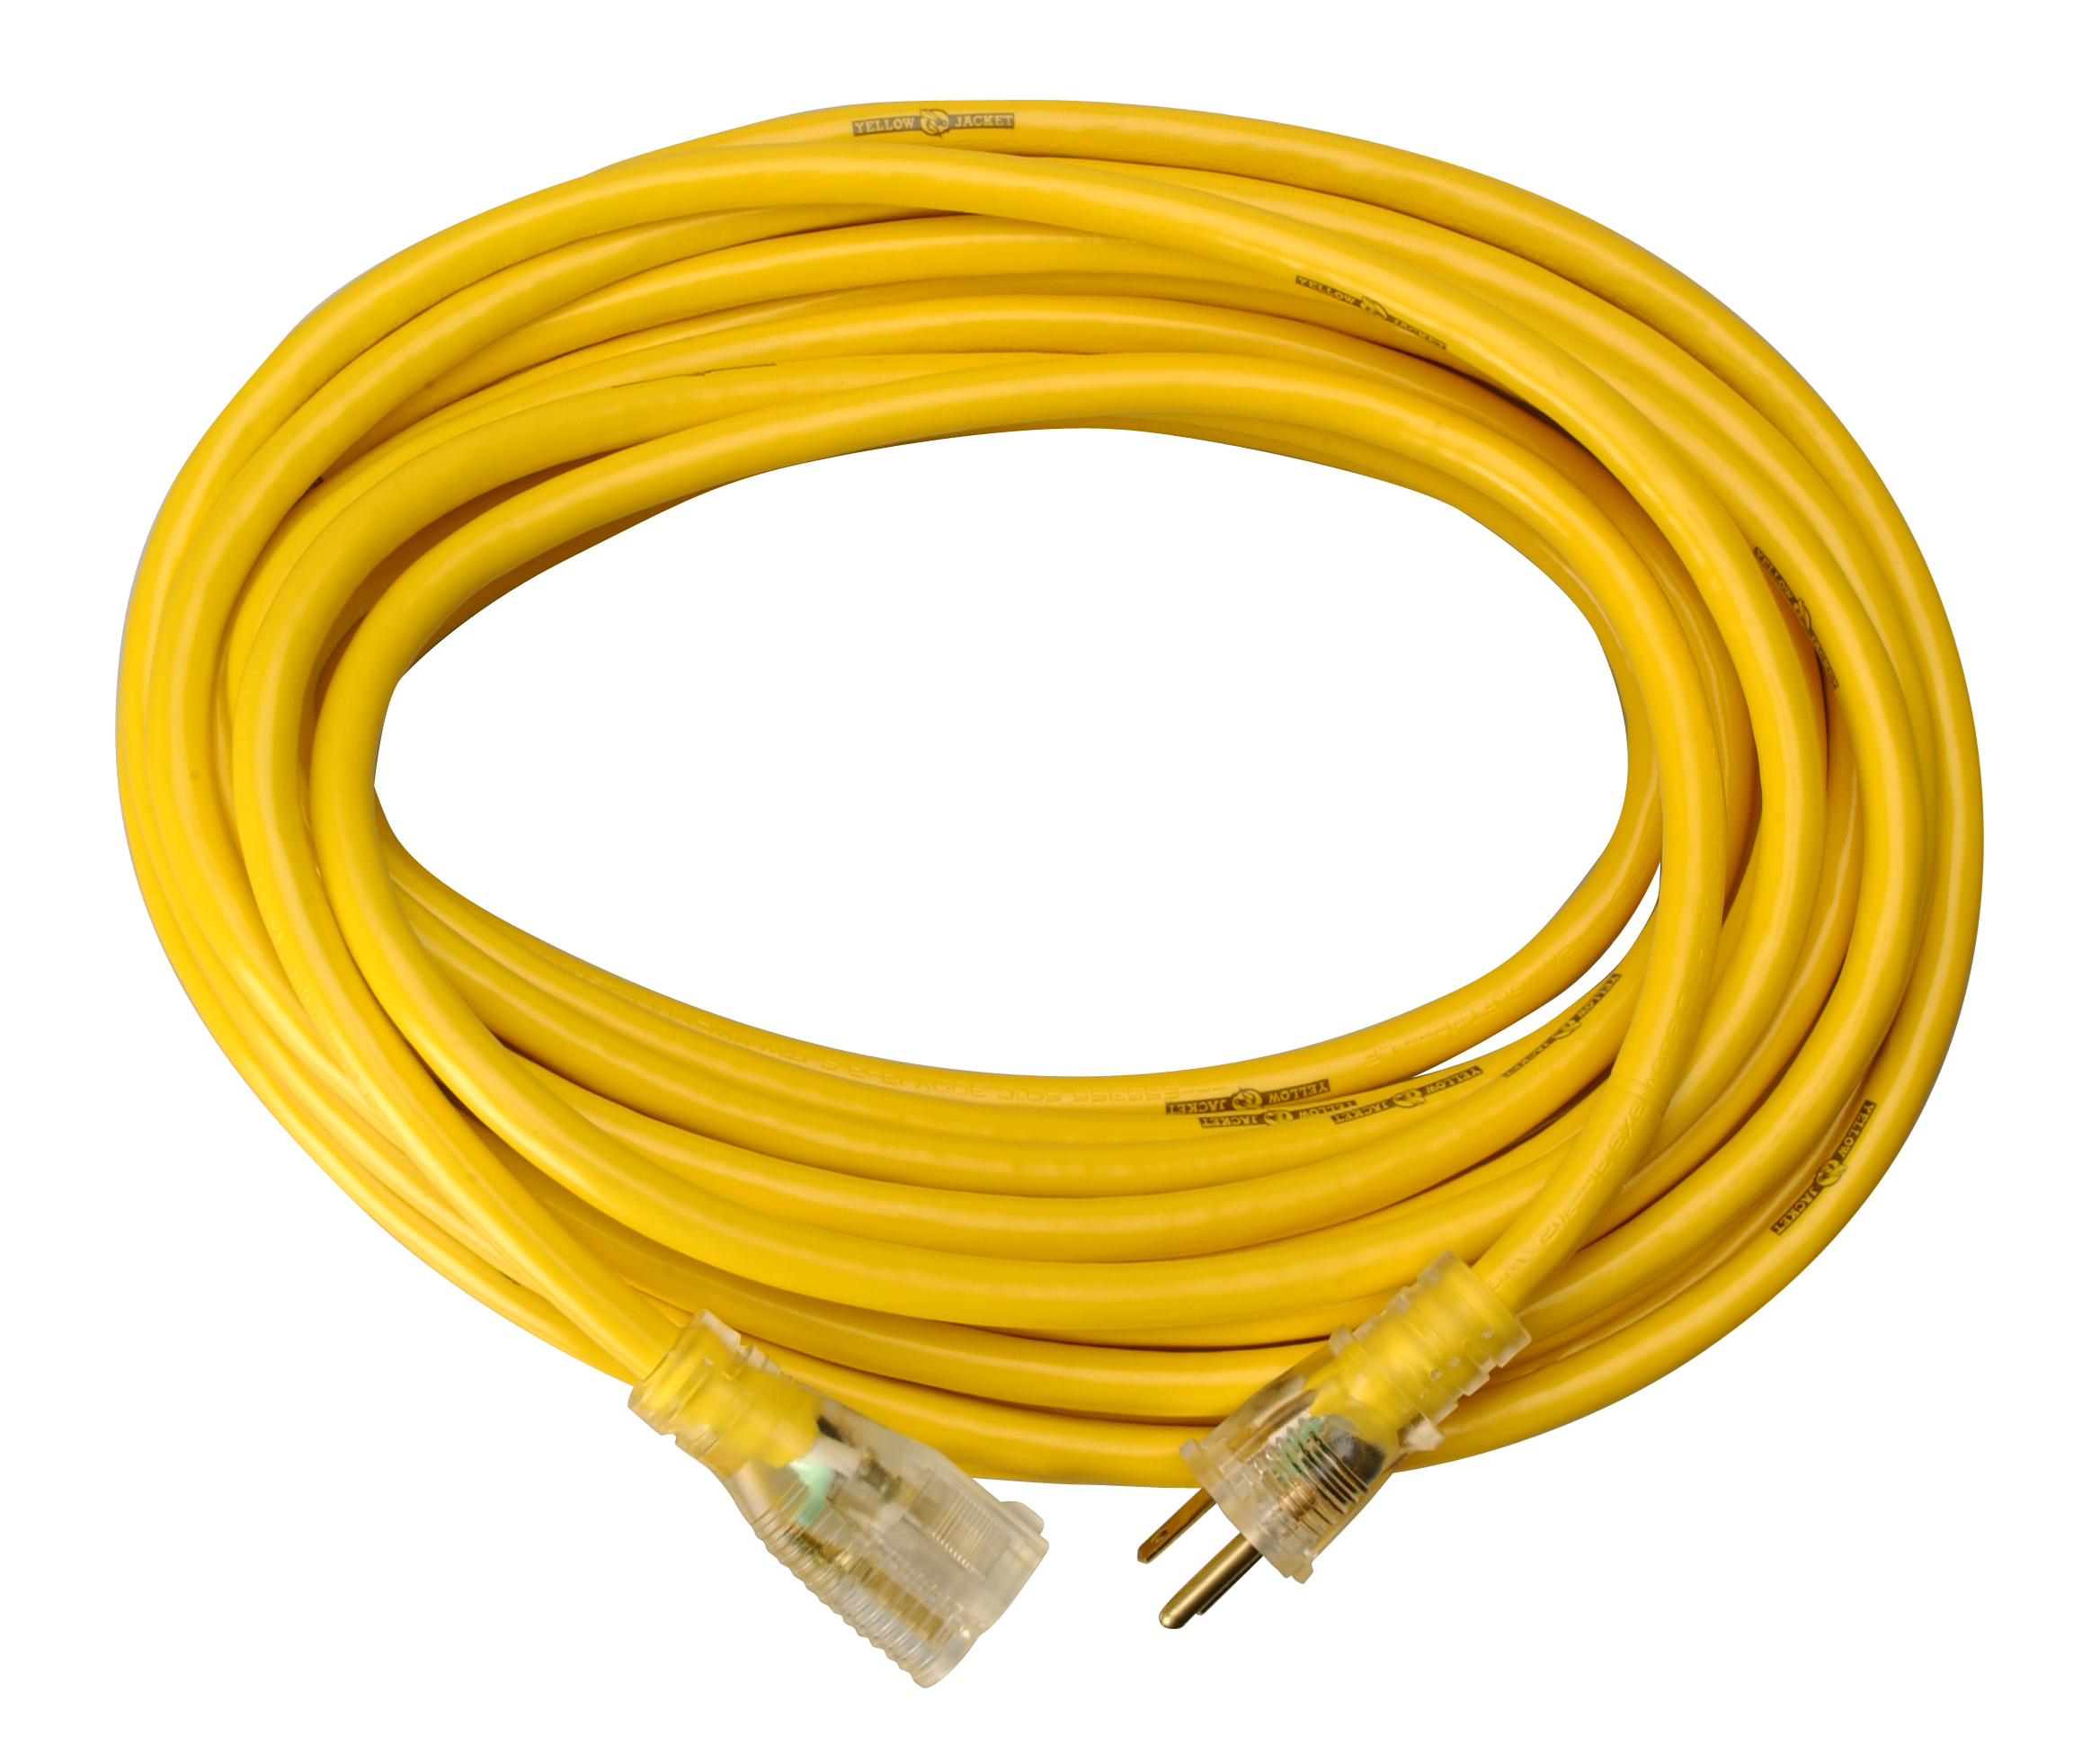 Wire clipart extension cord Pkg 2805 Downloads Cord ·